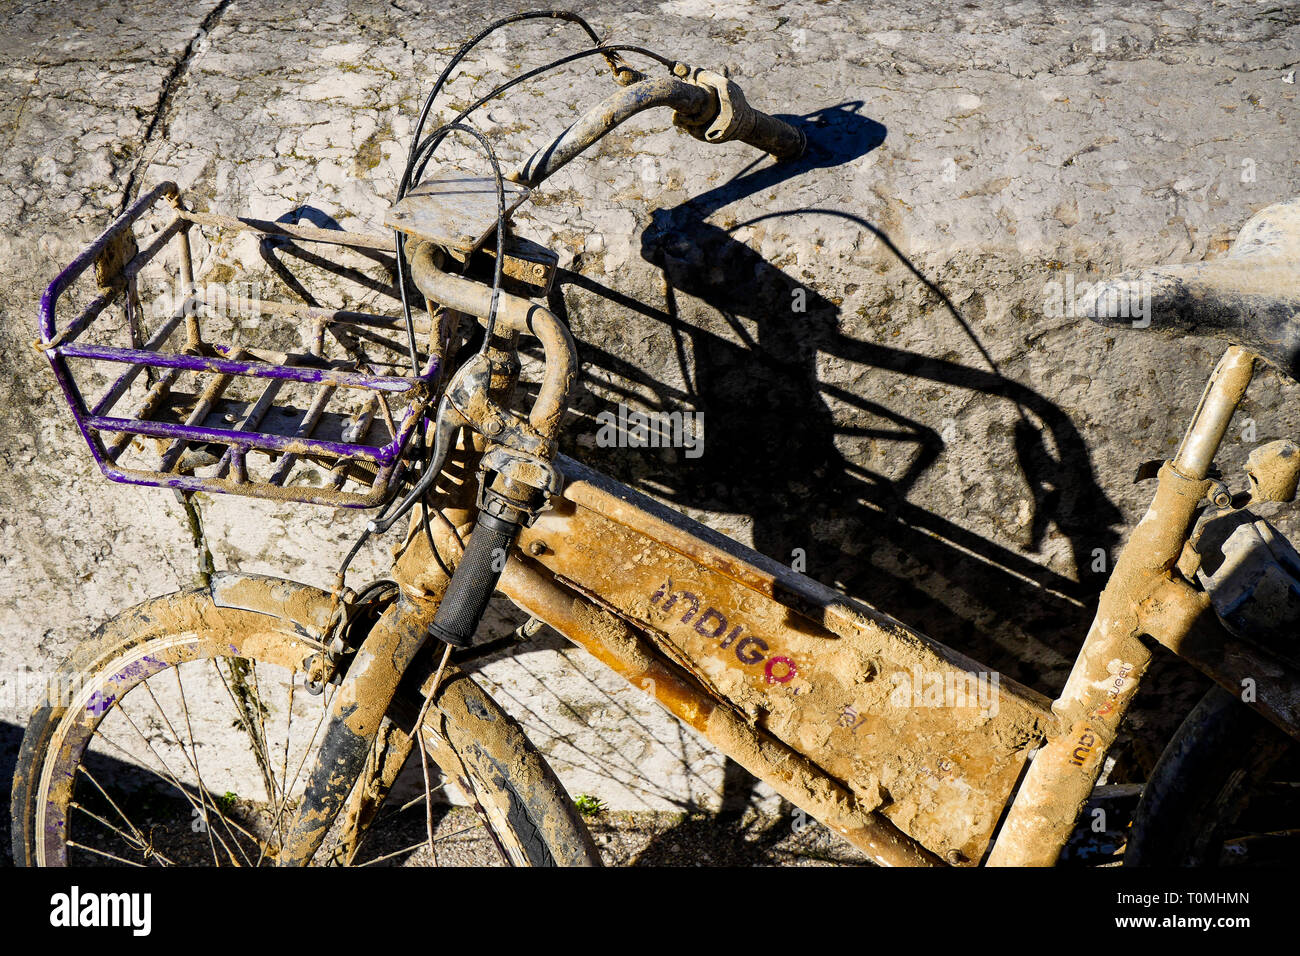 Bicycle wreck, Lyon, France - Stock Image